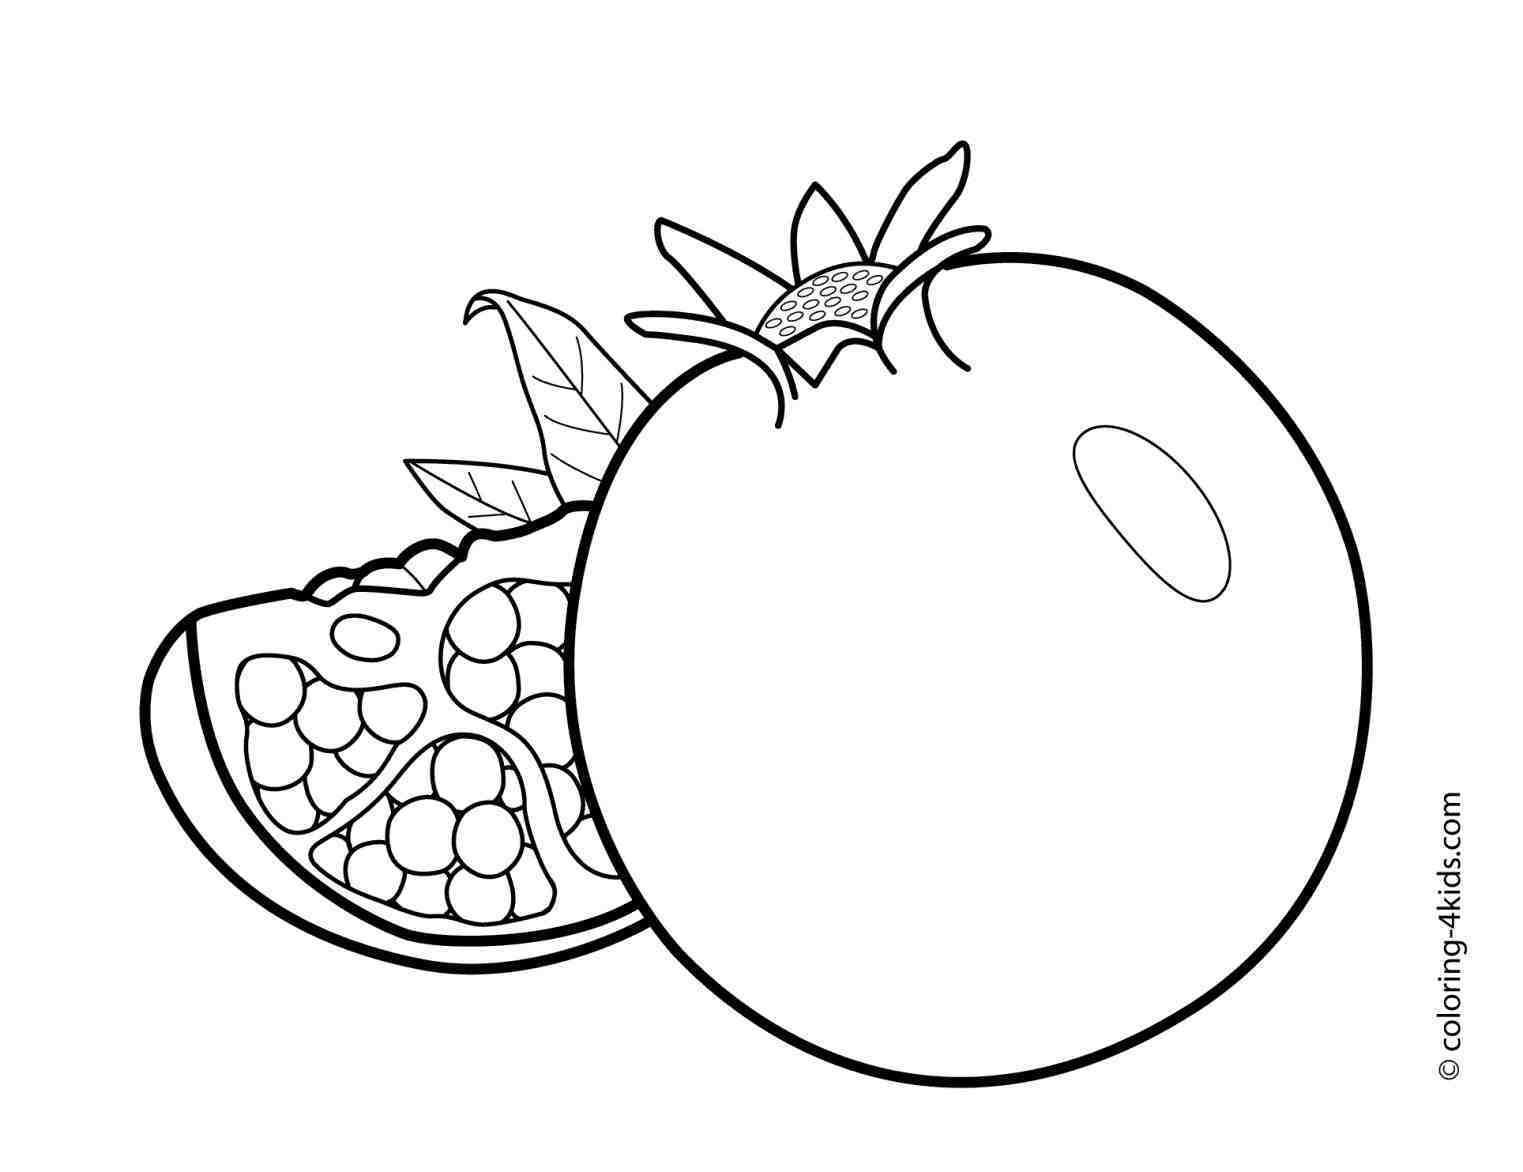 1523x1172 drawing easy vegetables art healthy how to draw vegetables